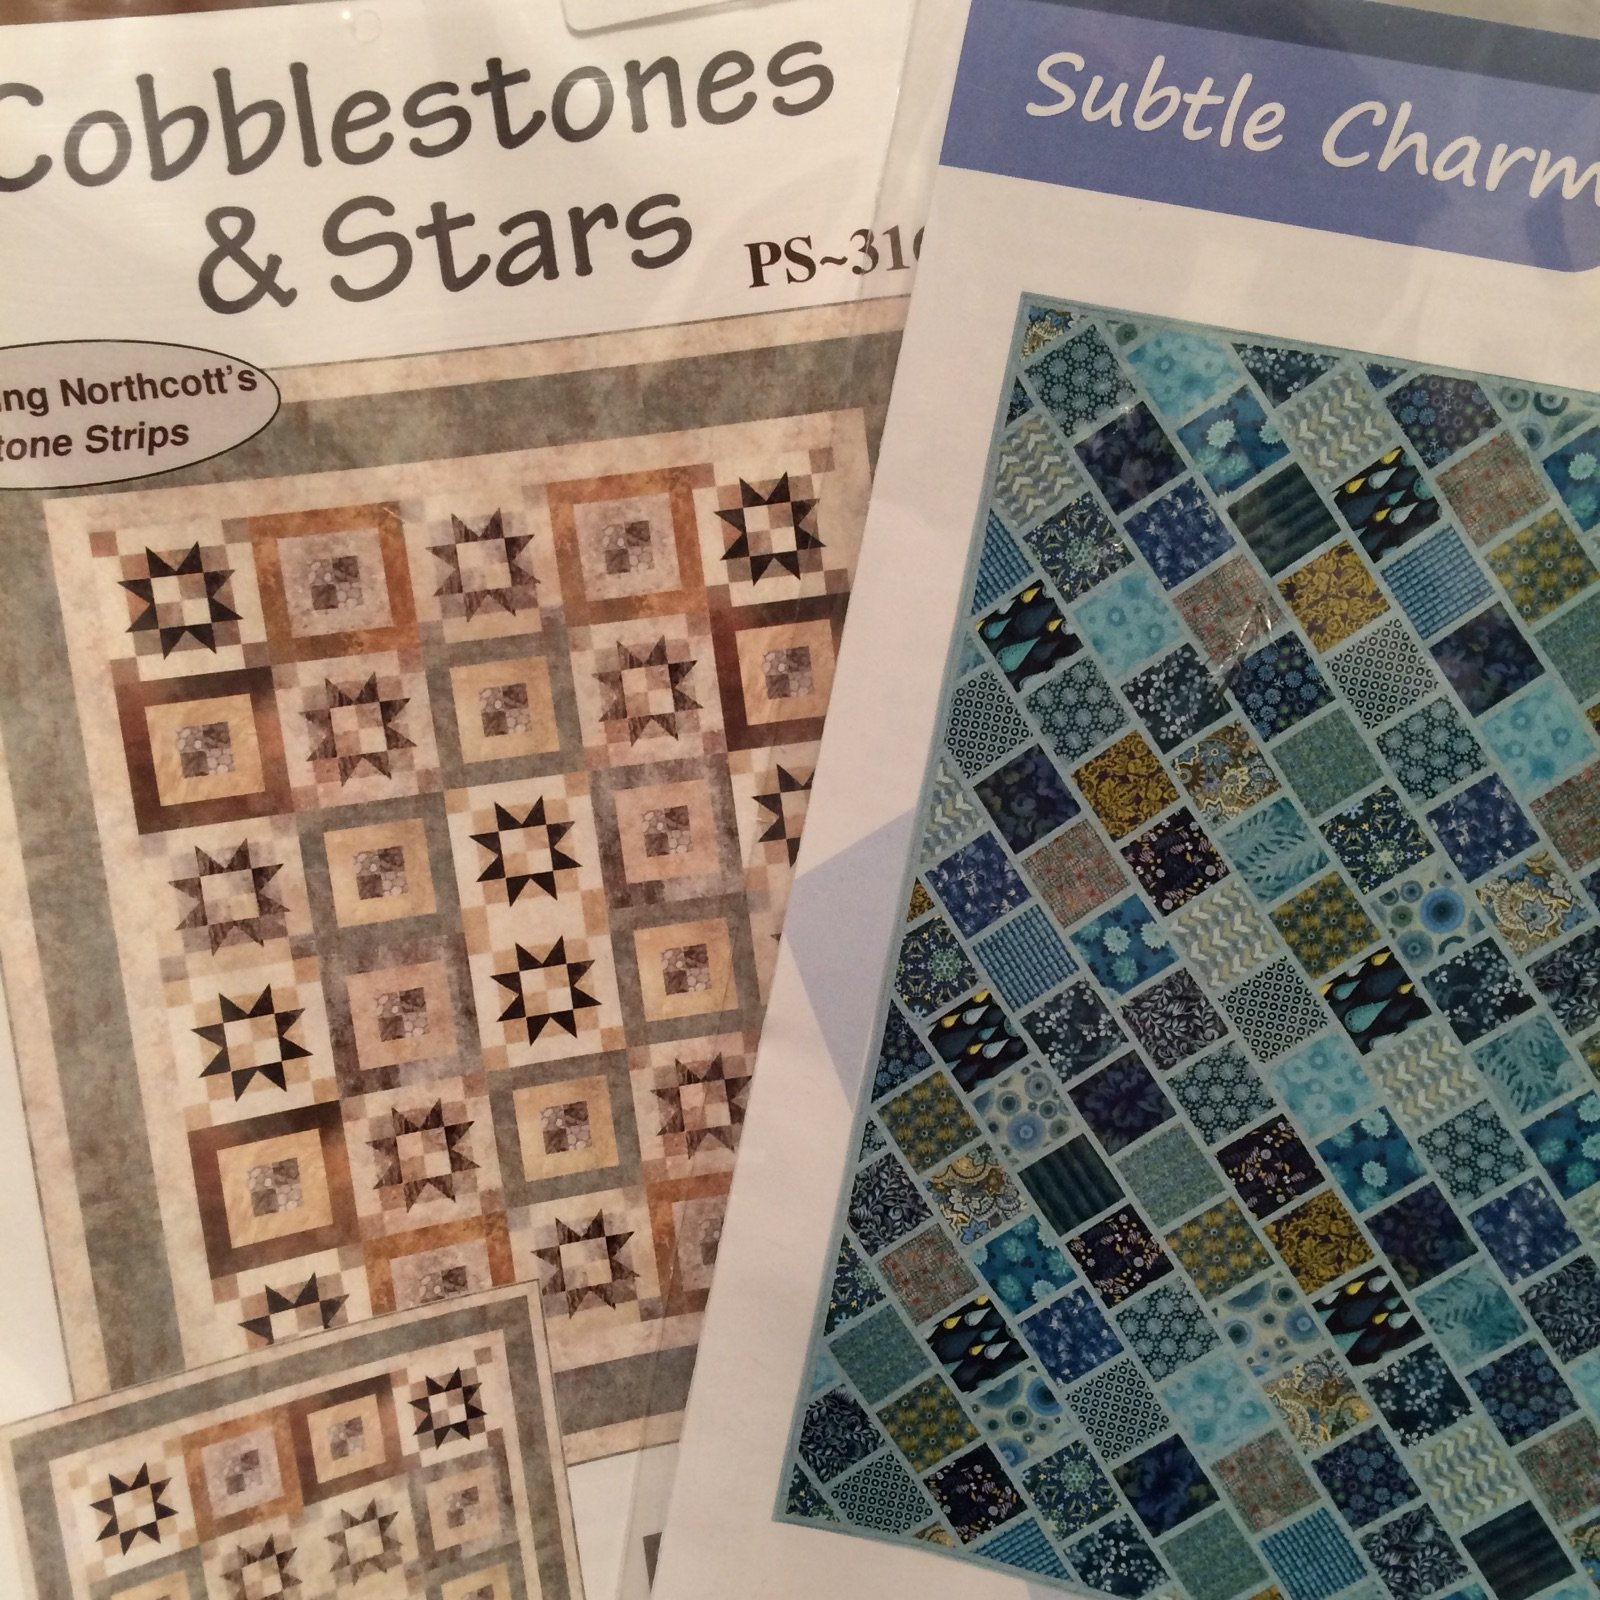 2 Pack Pattern Bundle-Subtle Charm and Cobblestones & Stars